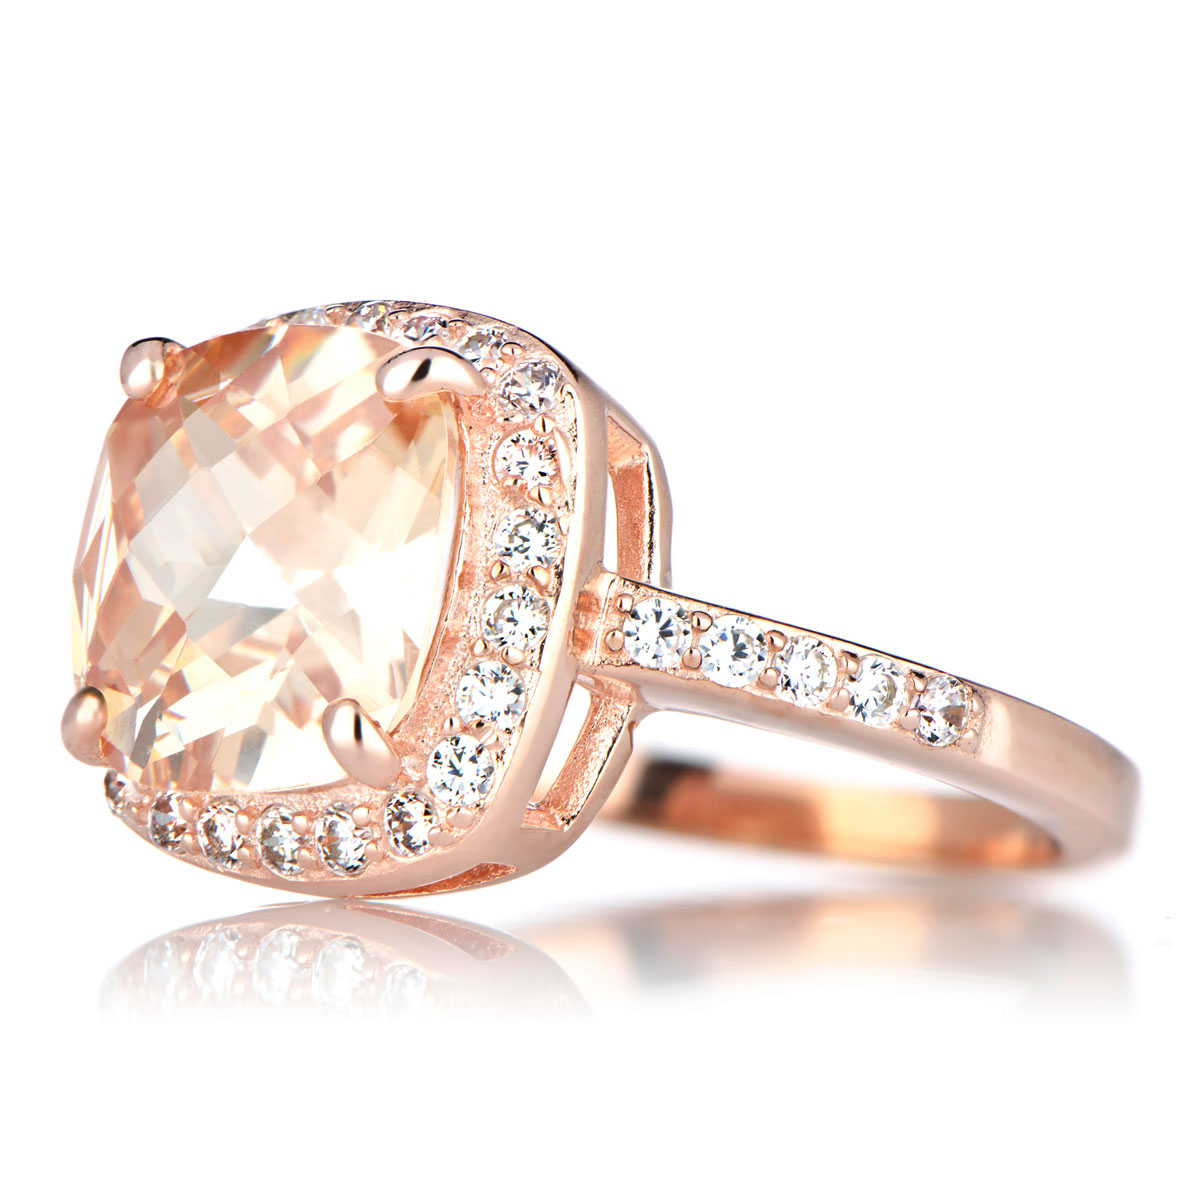 Rose Gold Engagement Rings Rose Gold Engagement Rings Cushion Cut